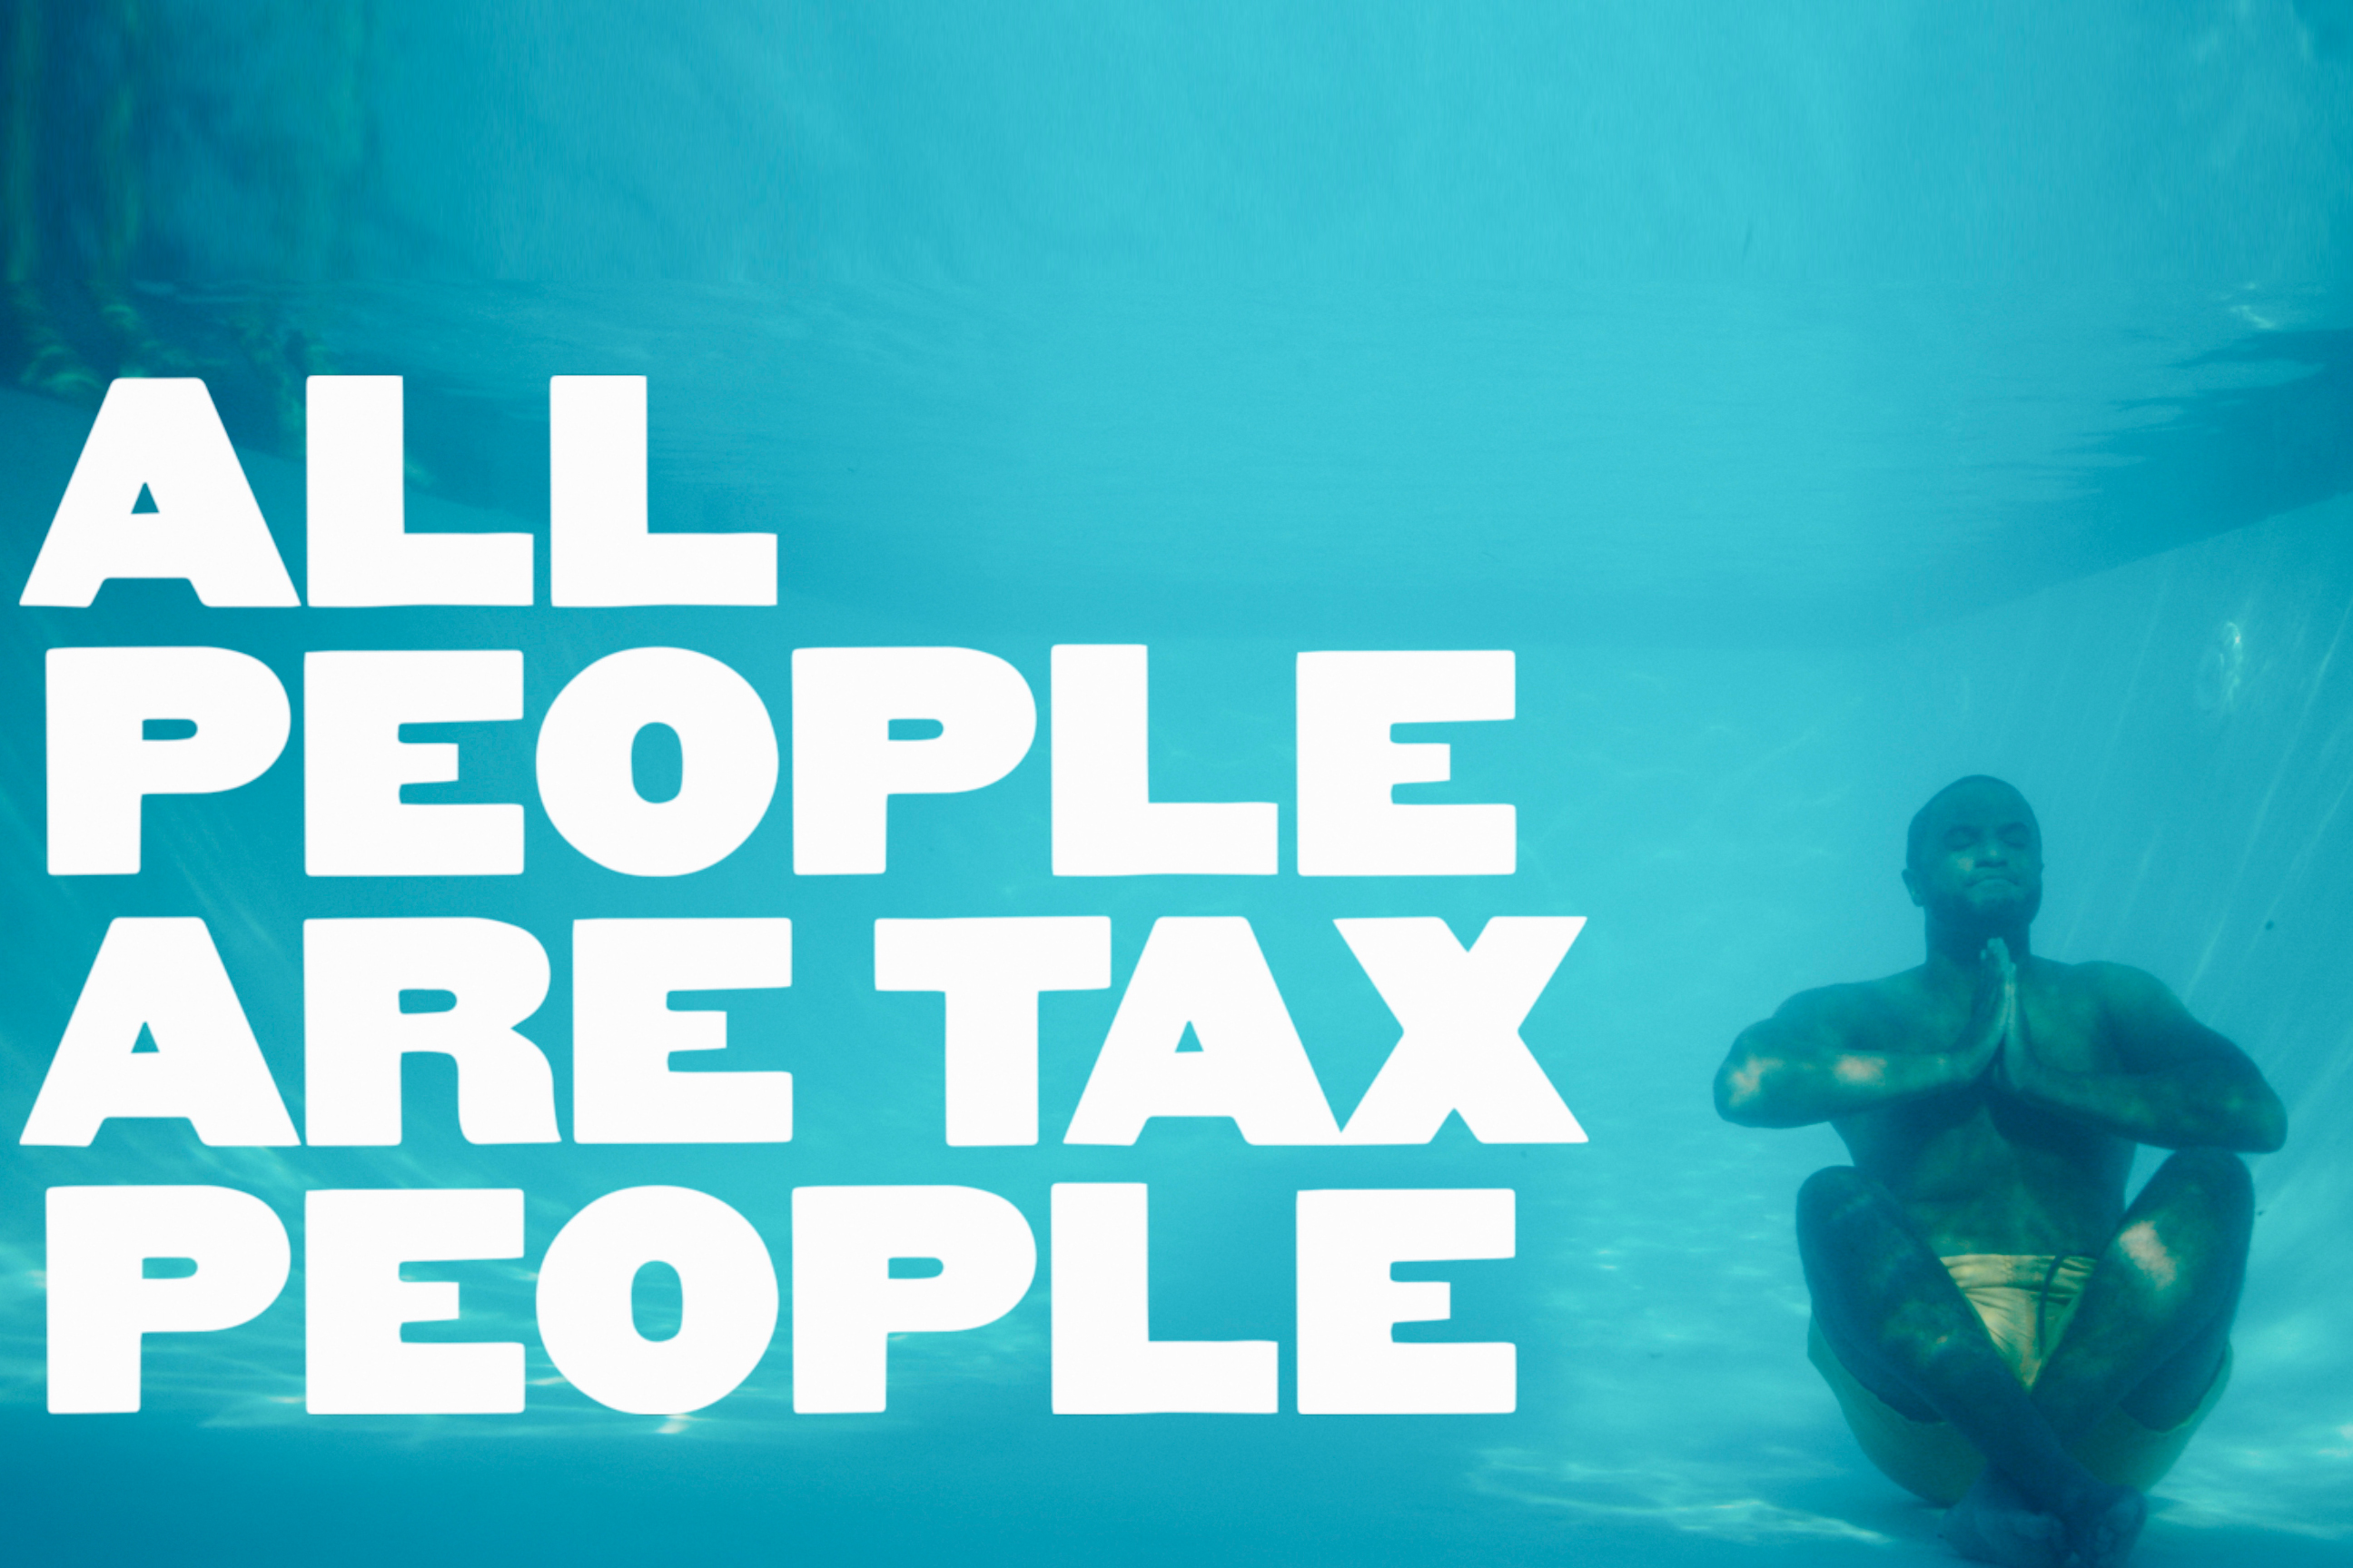 TurboTax's Super Bowl commercial aims to instill confidence in people doing their own taxes